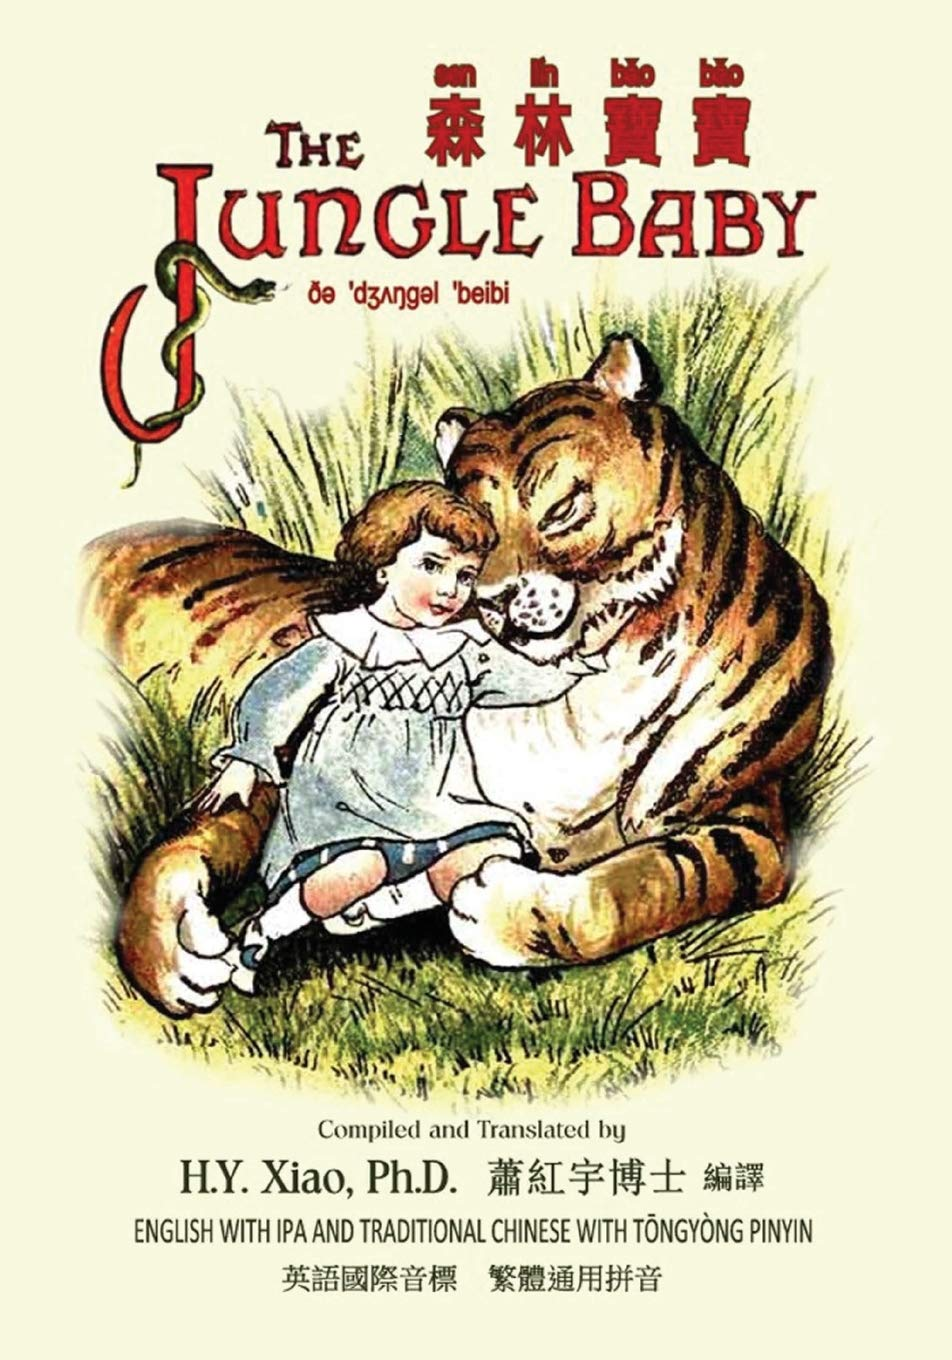 The Jungle Baby (Traditional Chinese): 08 Tongyong Pinyin with IPA Paperback B&W (Childrens Picture Books) (Volume 19) (Chinese Edition) pdf epub